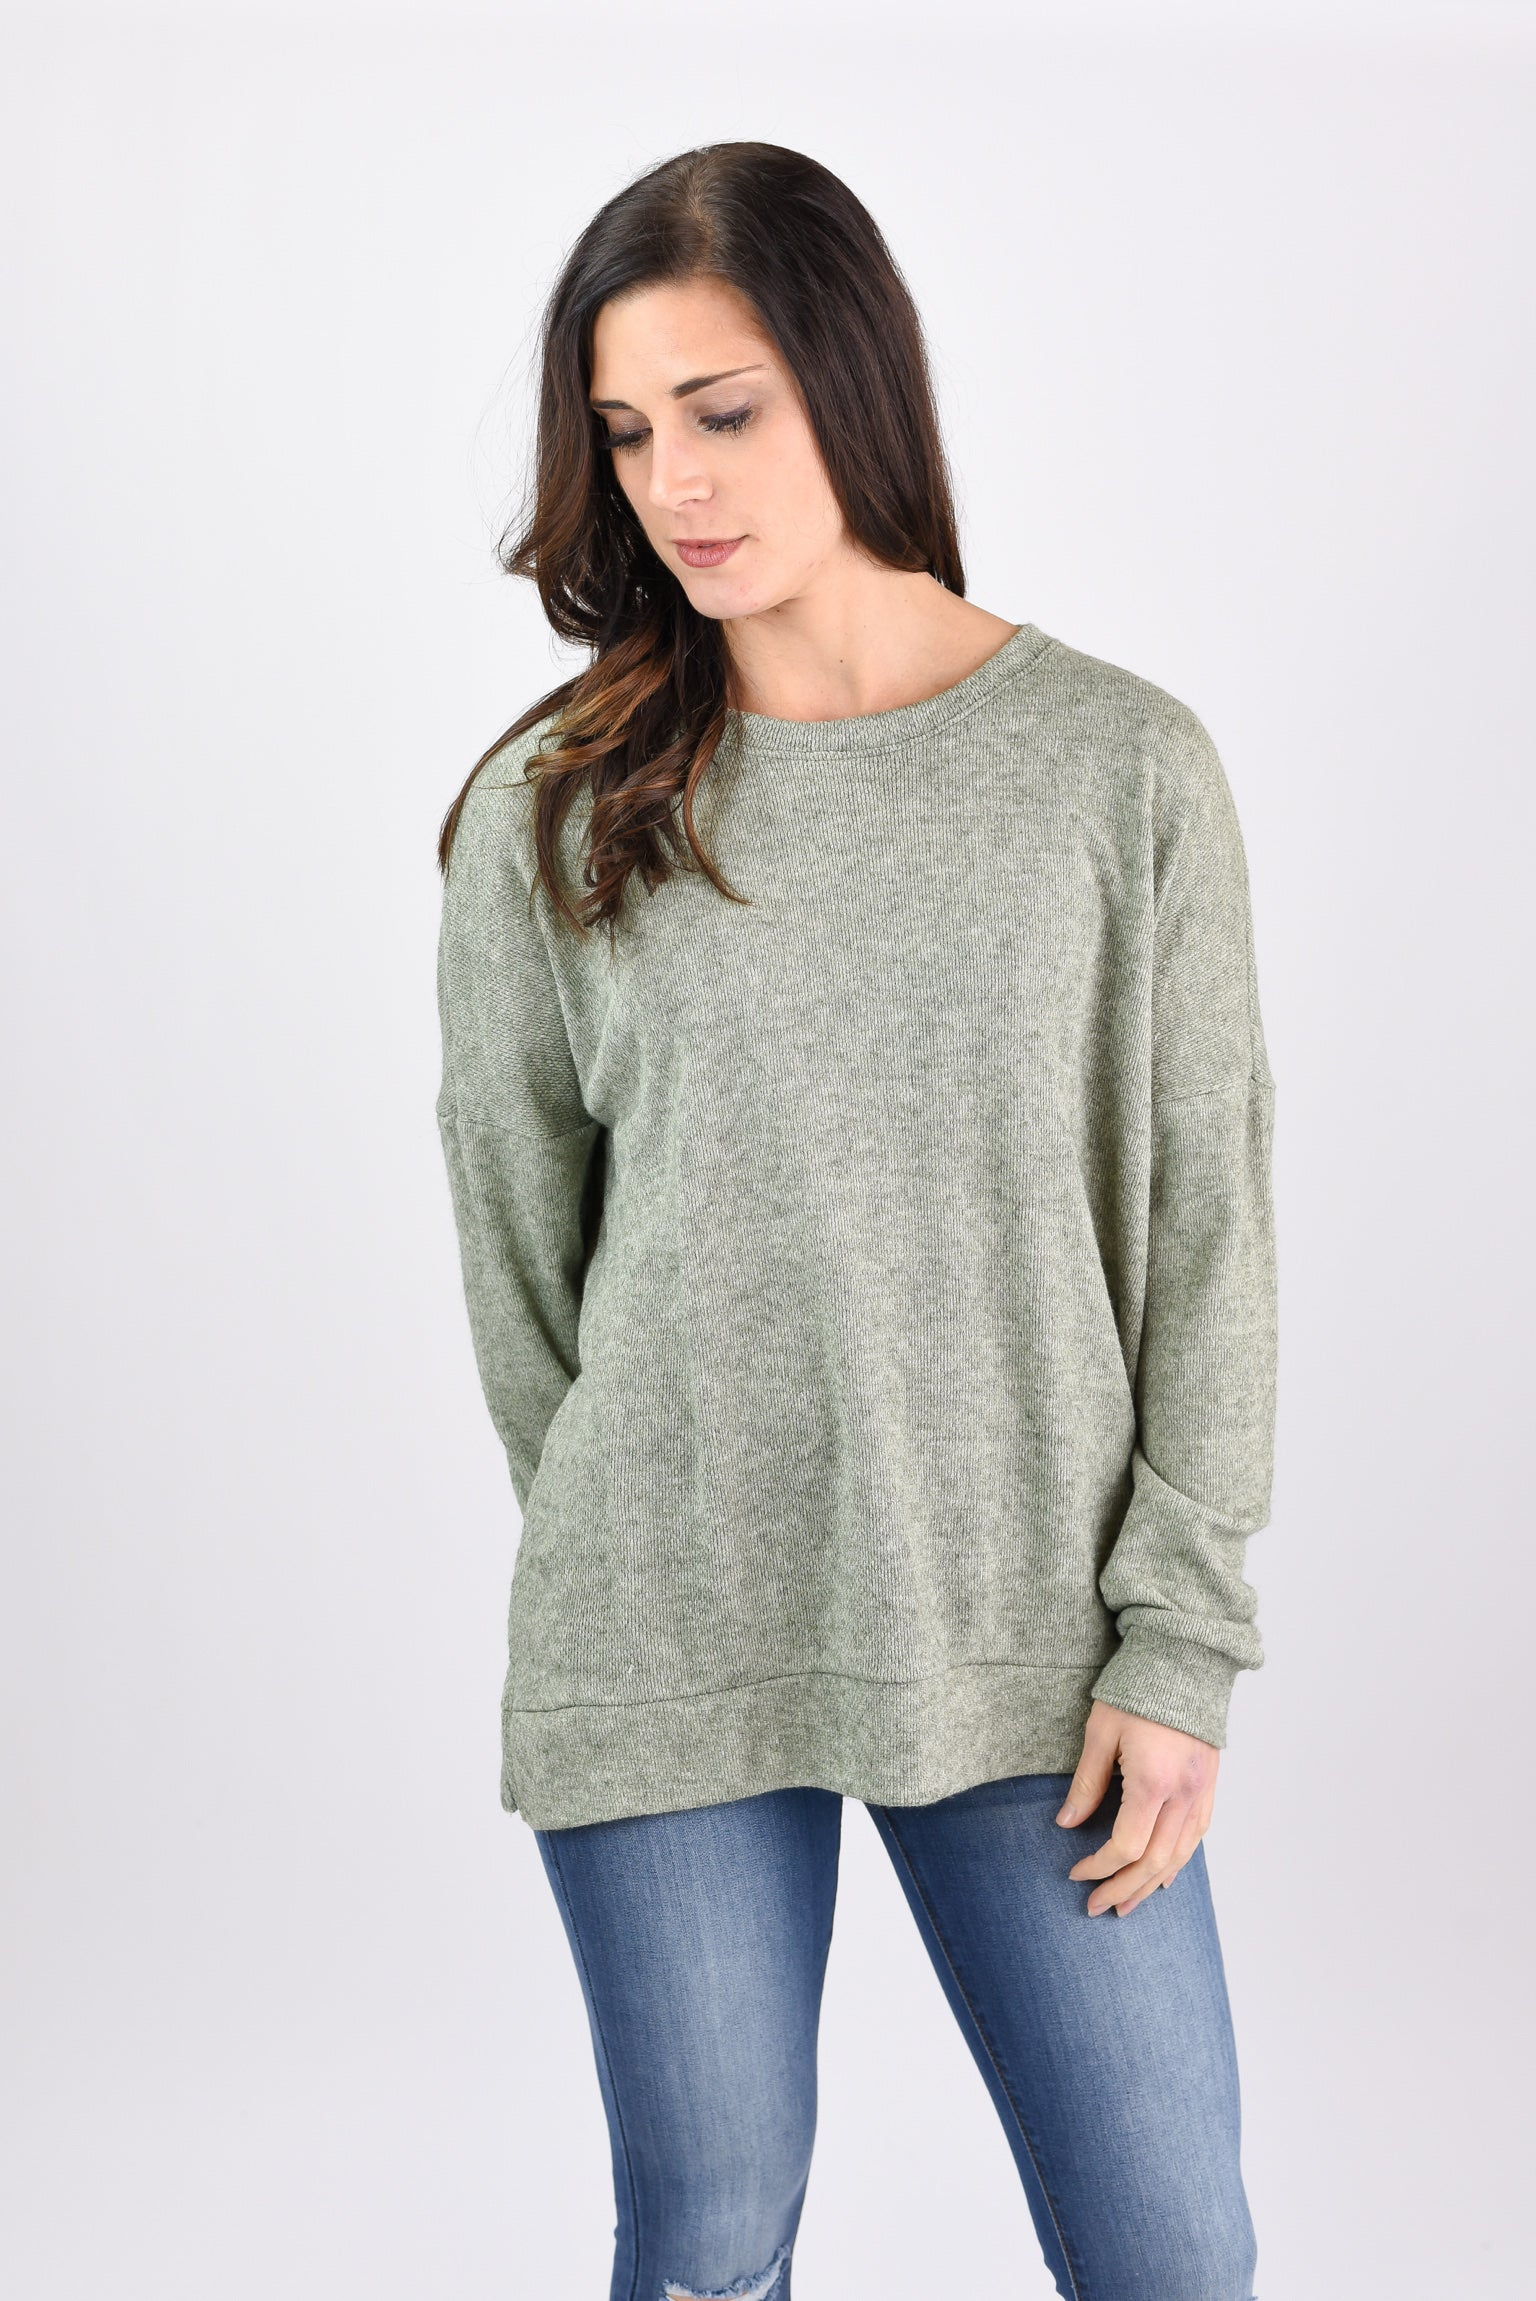 From The Start Lightweight Crew Neck Long Sleeve - Olive